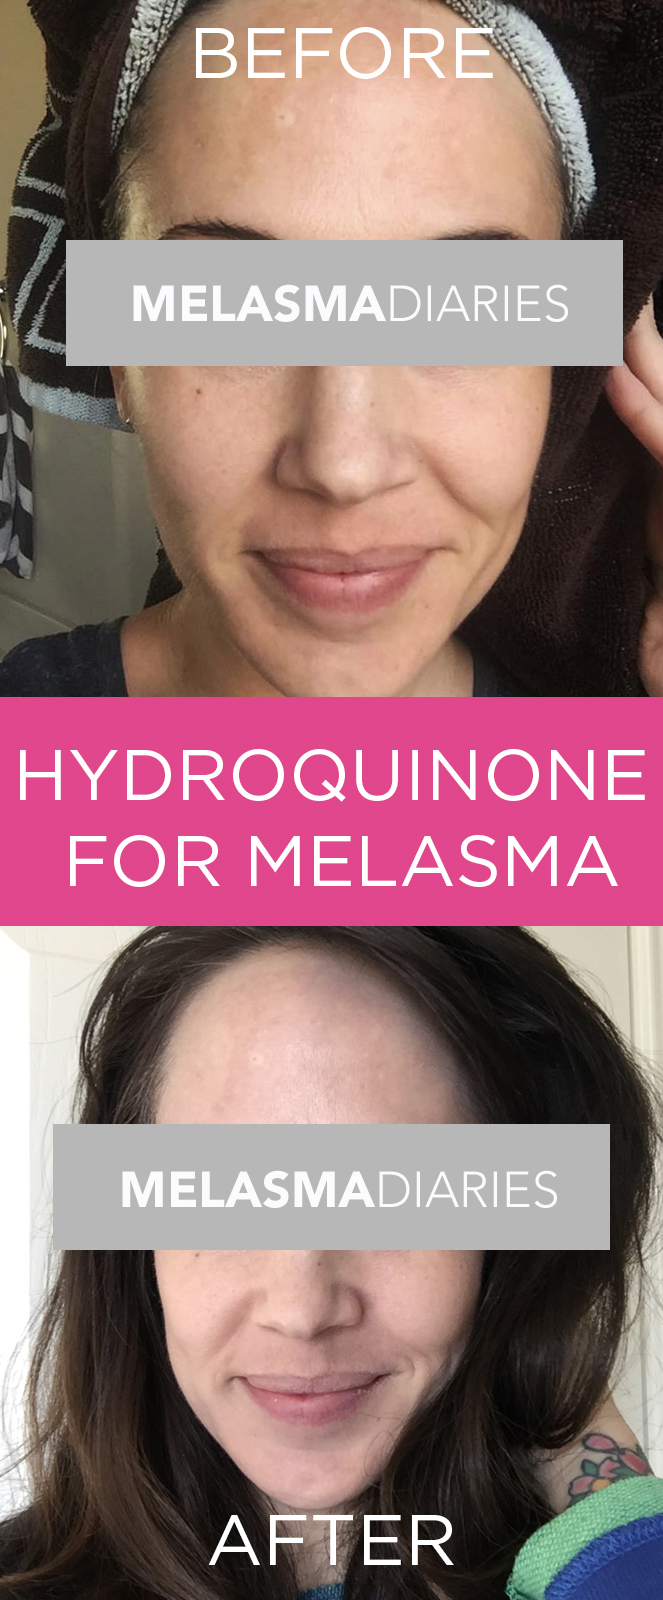 Wondering if you try hydroquinone to cure Melasma? Check out this before/after picture to see if it works.